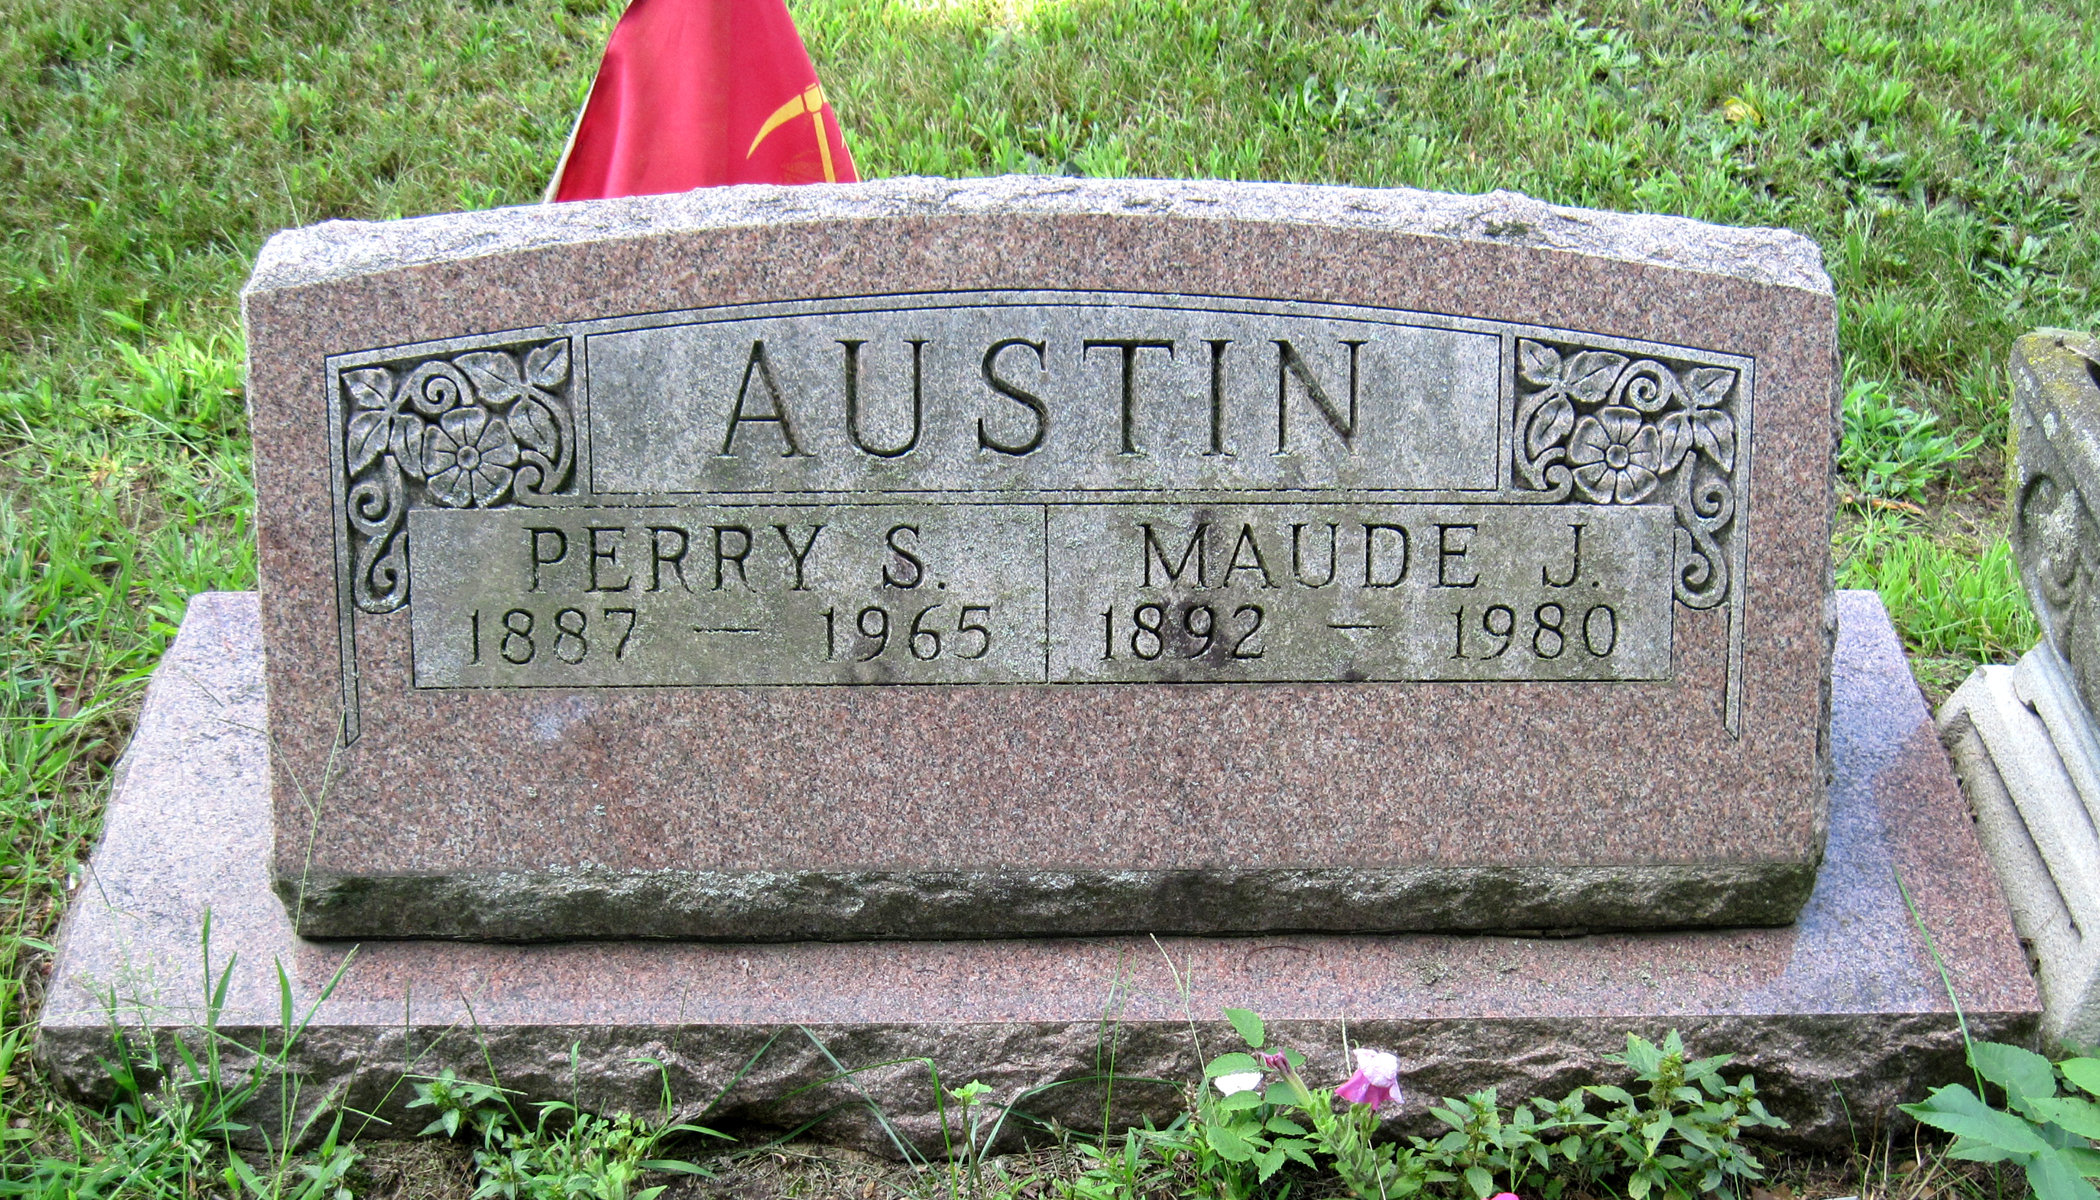 Perry Spencer Austin